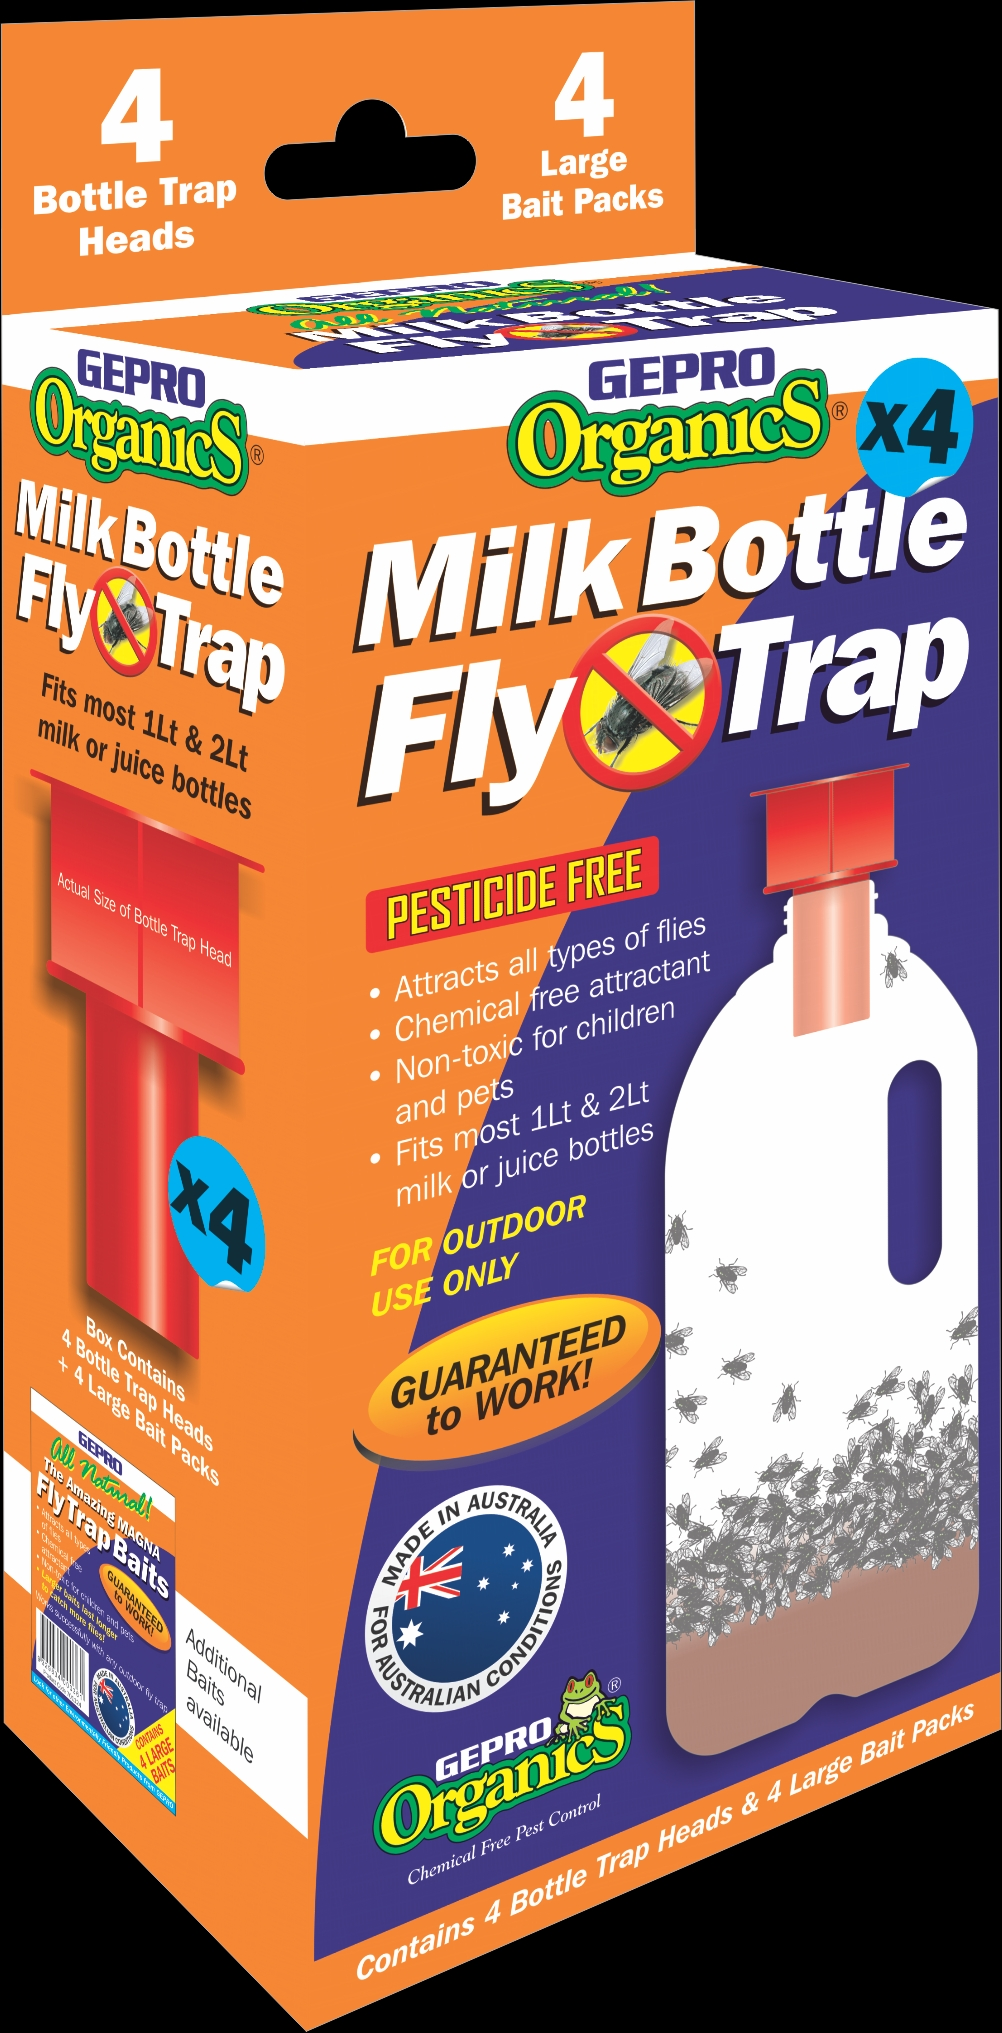 Gepro Organics Milk Bottle Fly Trap